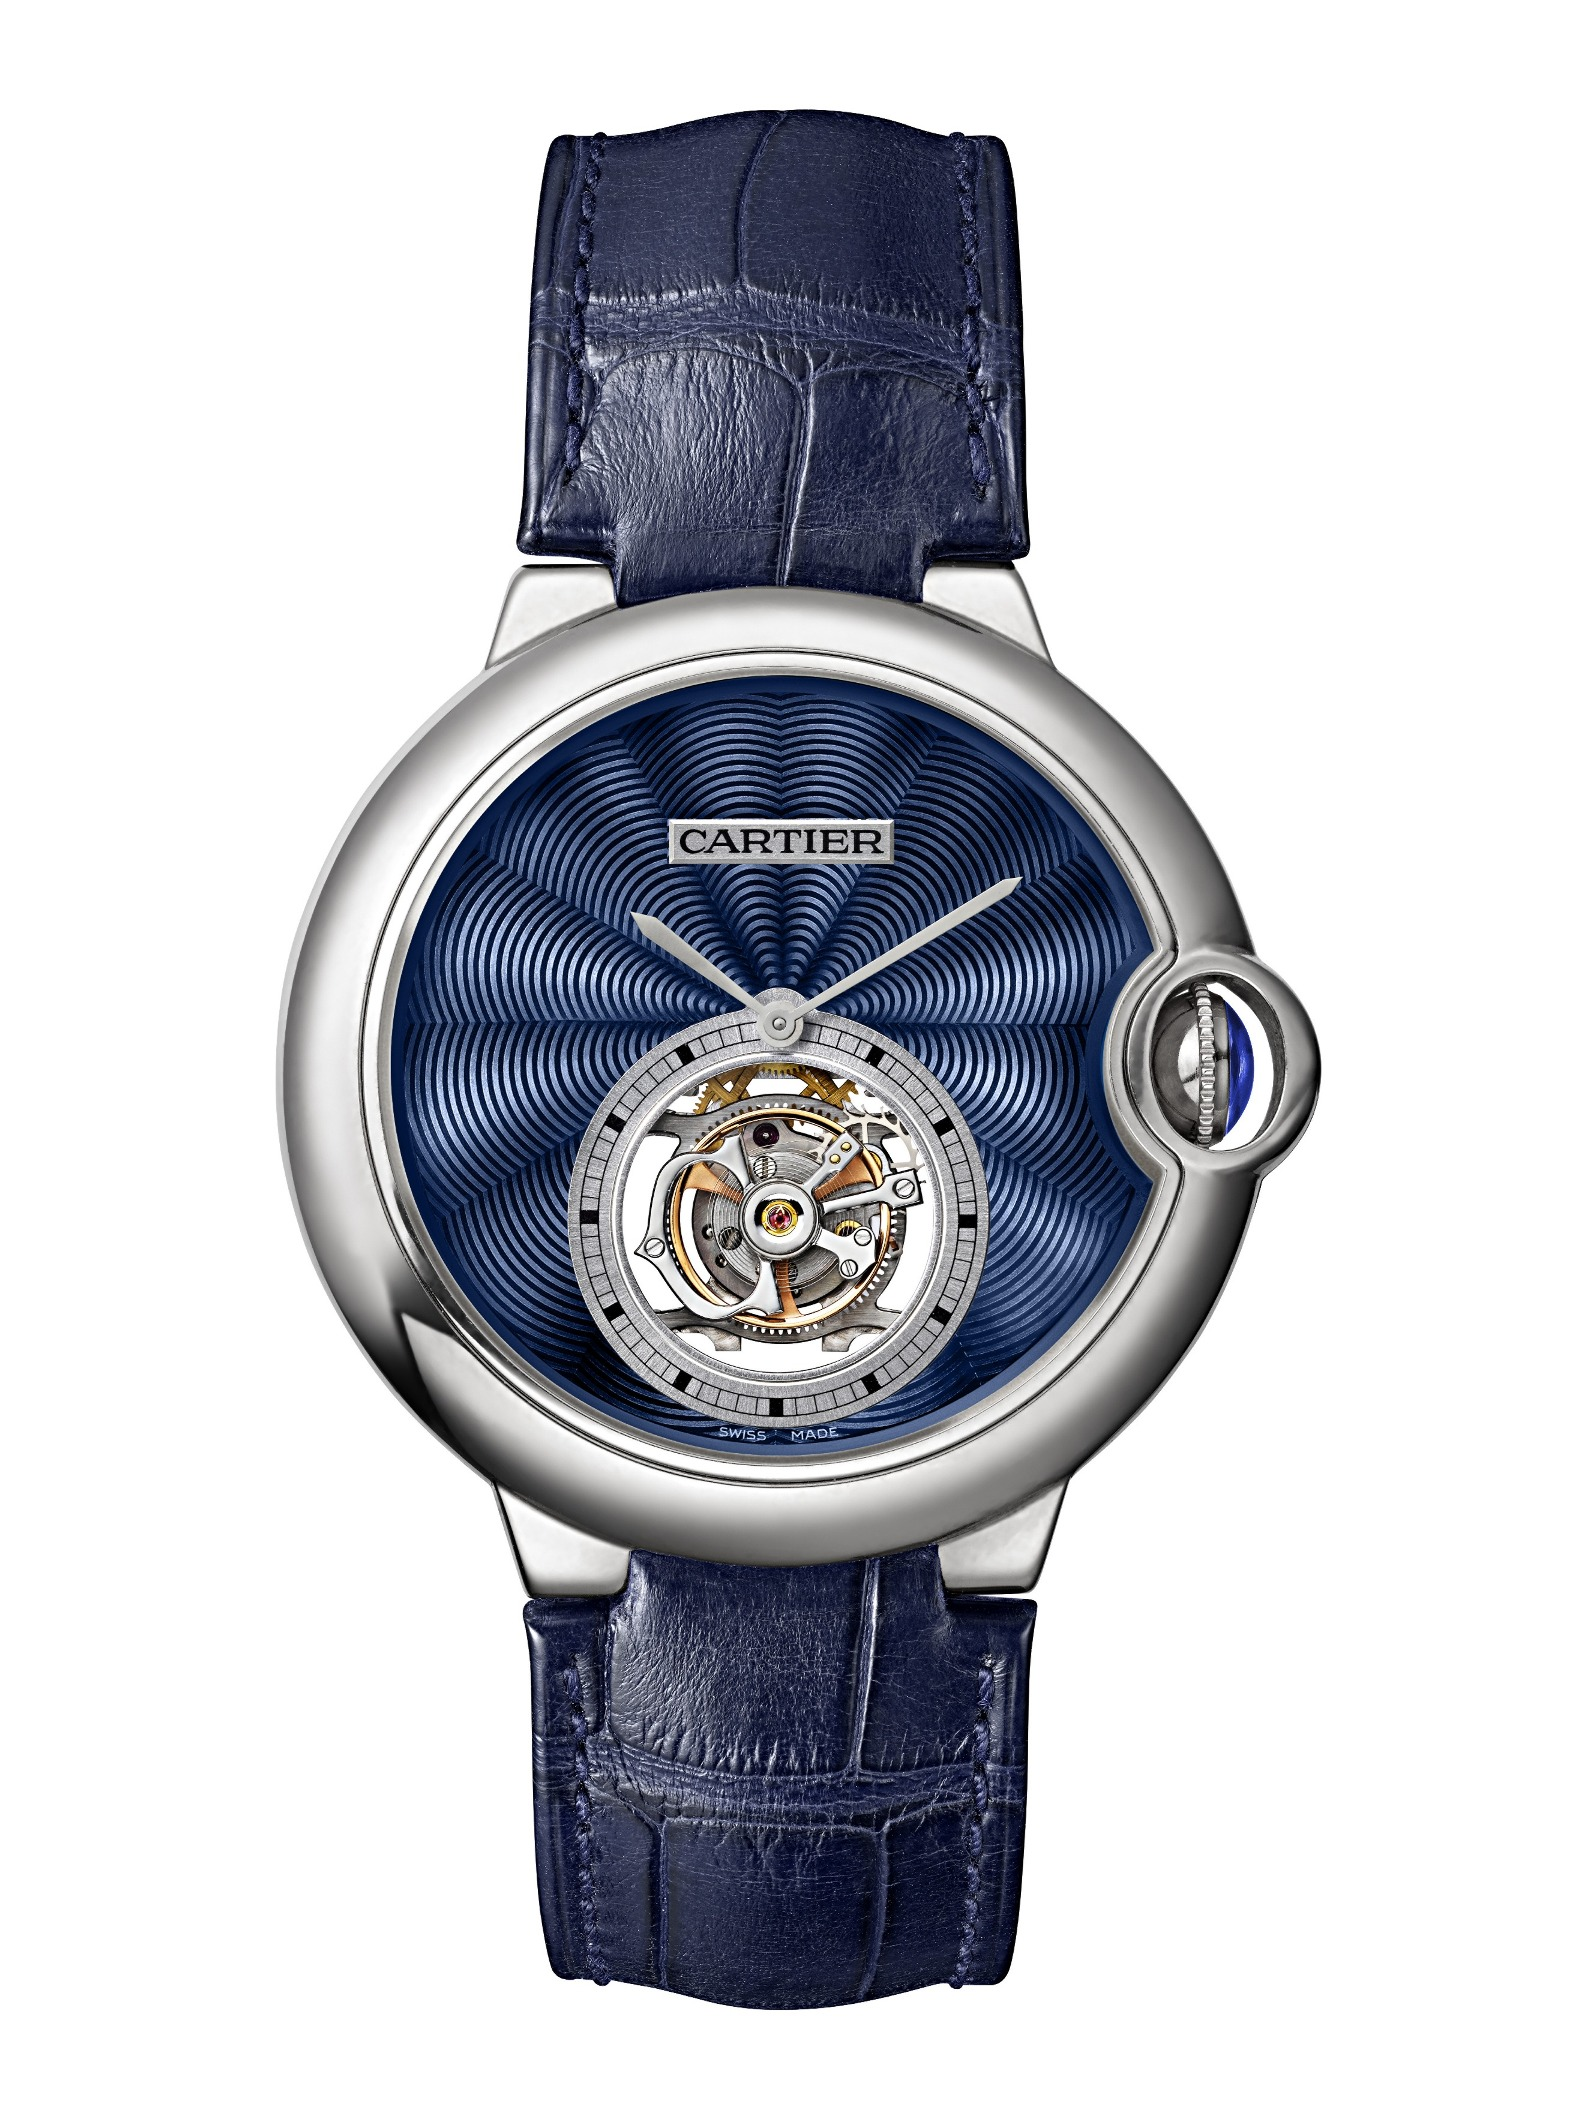 Ballon Bleu de Cartier Flying Tourbillon Replica Watches